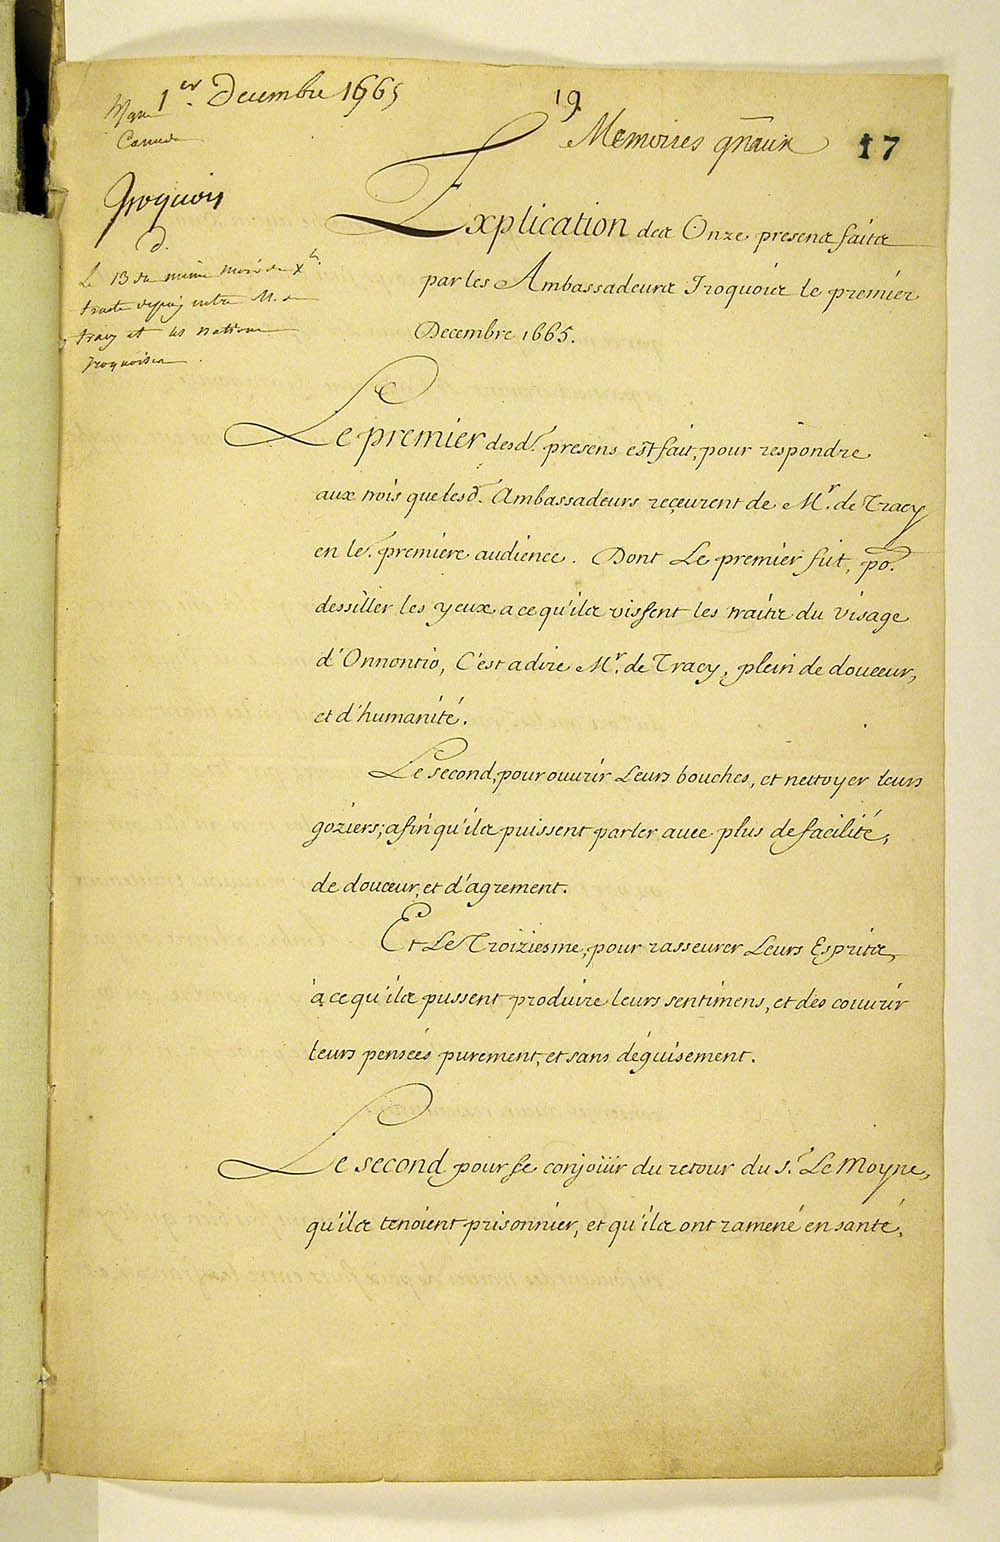 Explication des onze presens faits par les Ambassadeurs Iroquois [Explanation of the eleven gifts presented by the Iroquois Ambassadors], December 1, 1665. FR CAOM COL F3 2 fol. 17-20